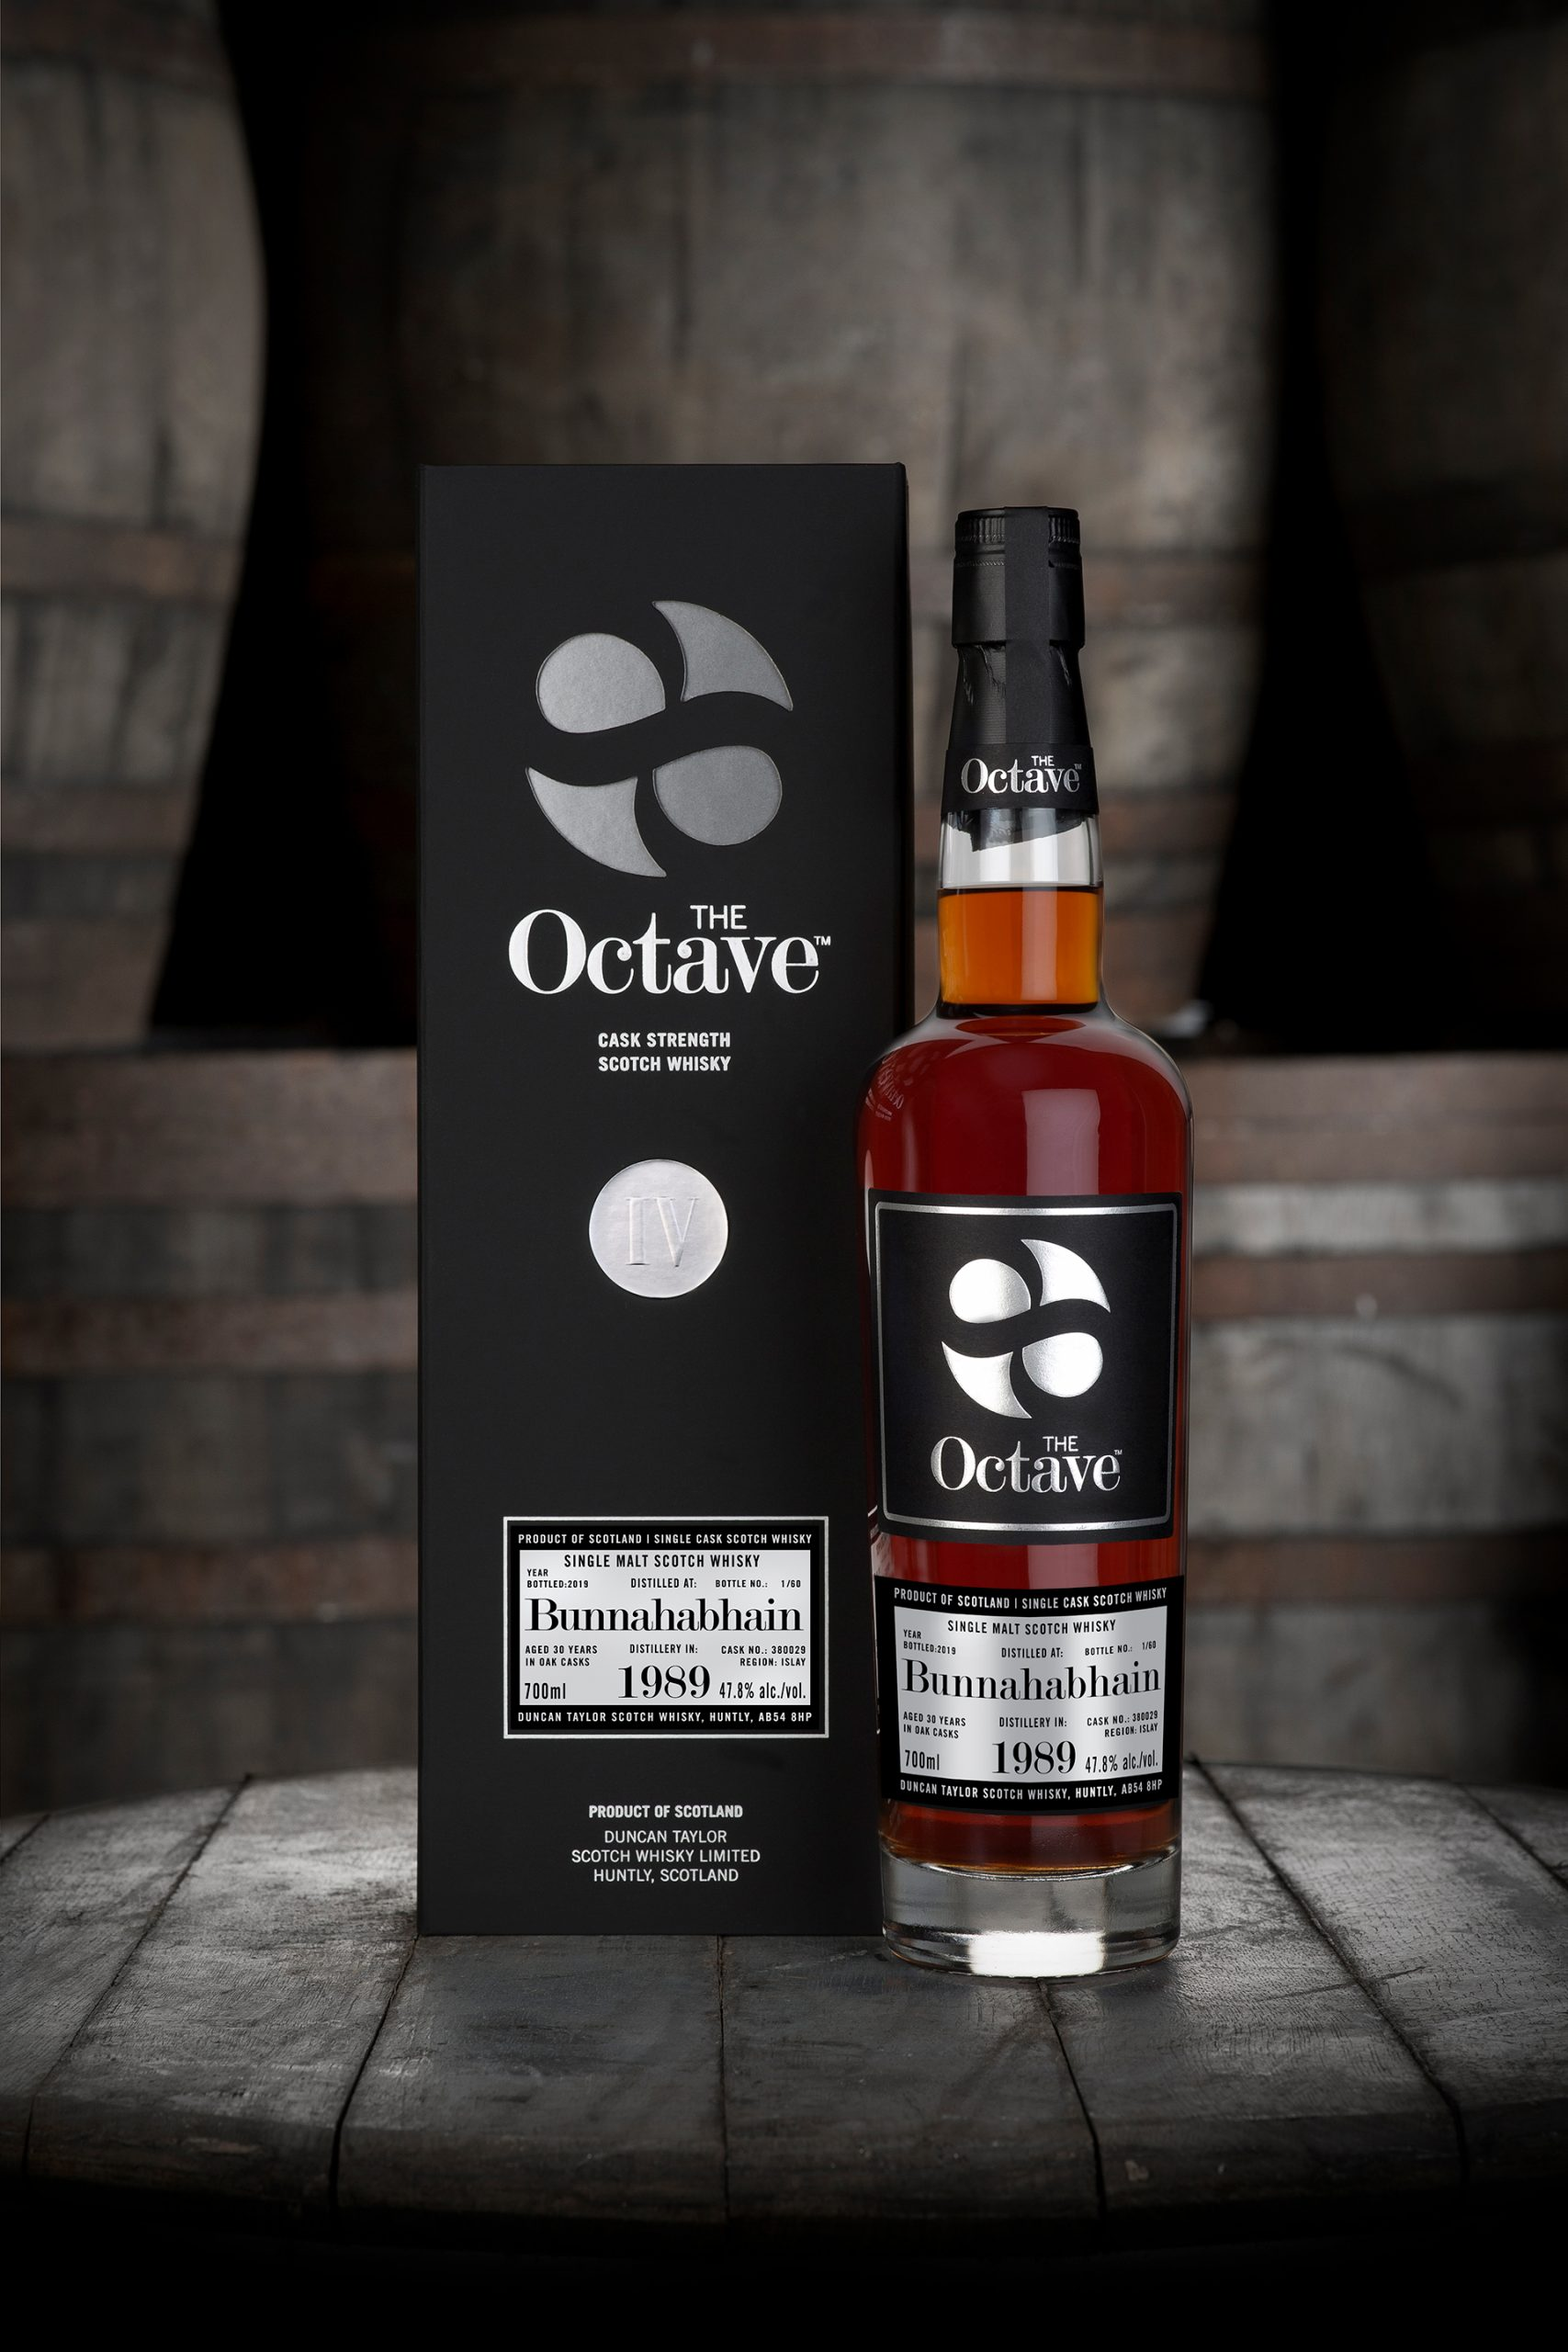 The Octave Premium Bunnahabhain 1989 30 Year Old, £660